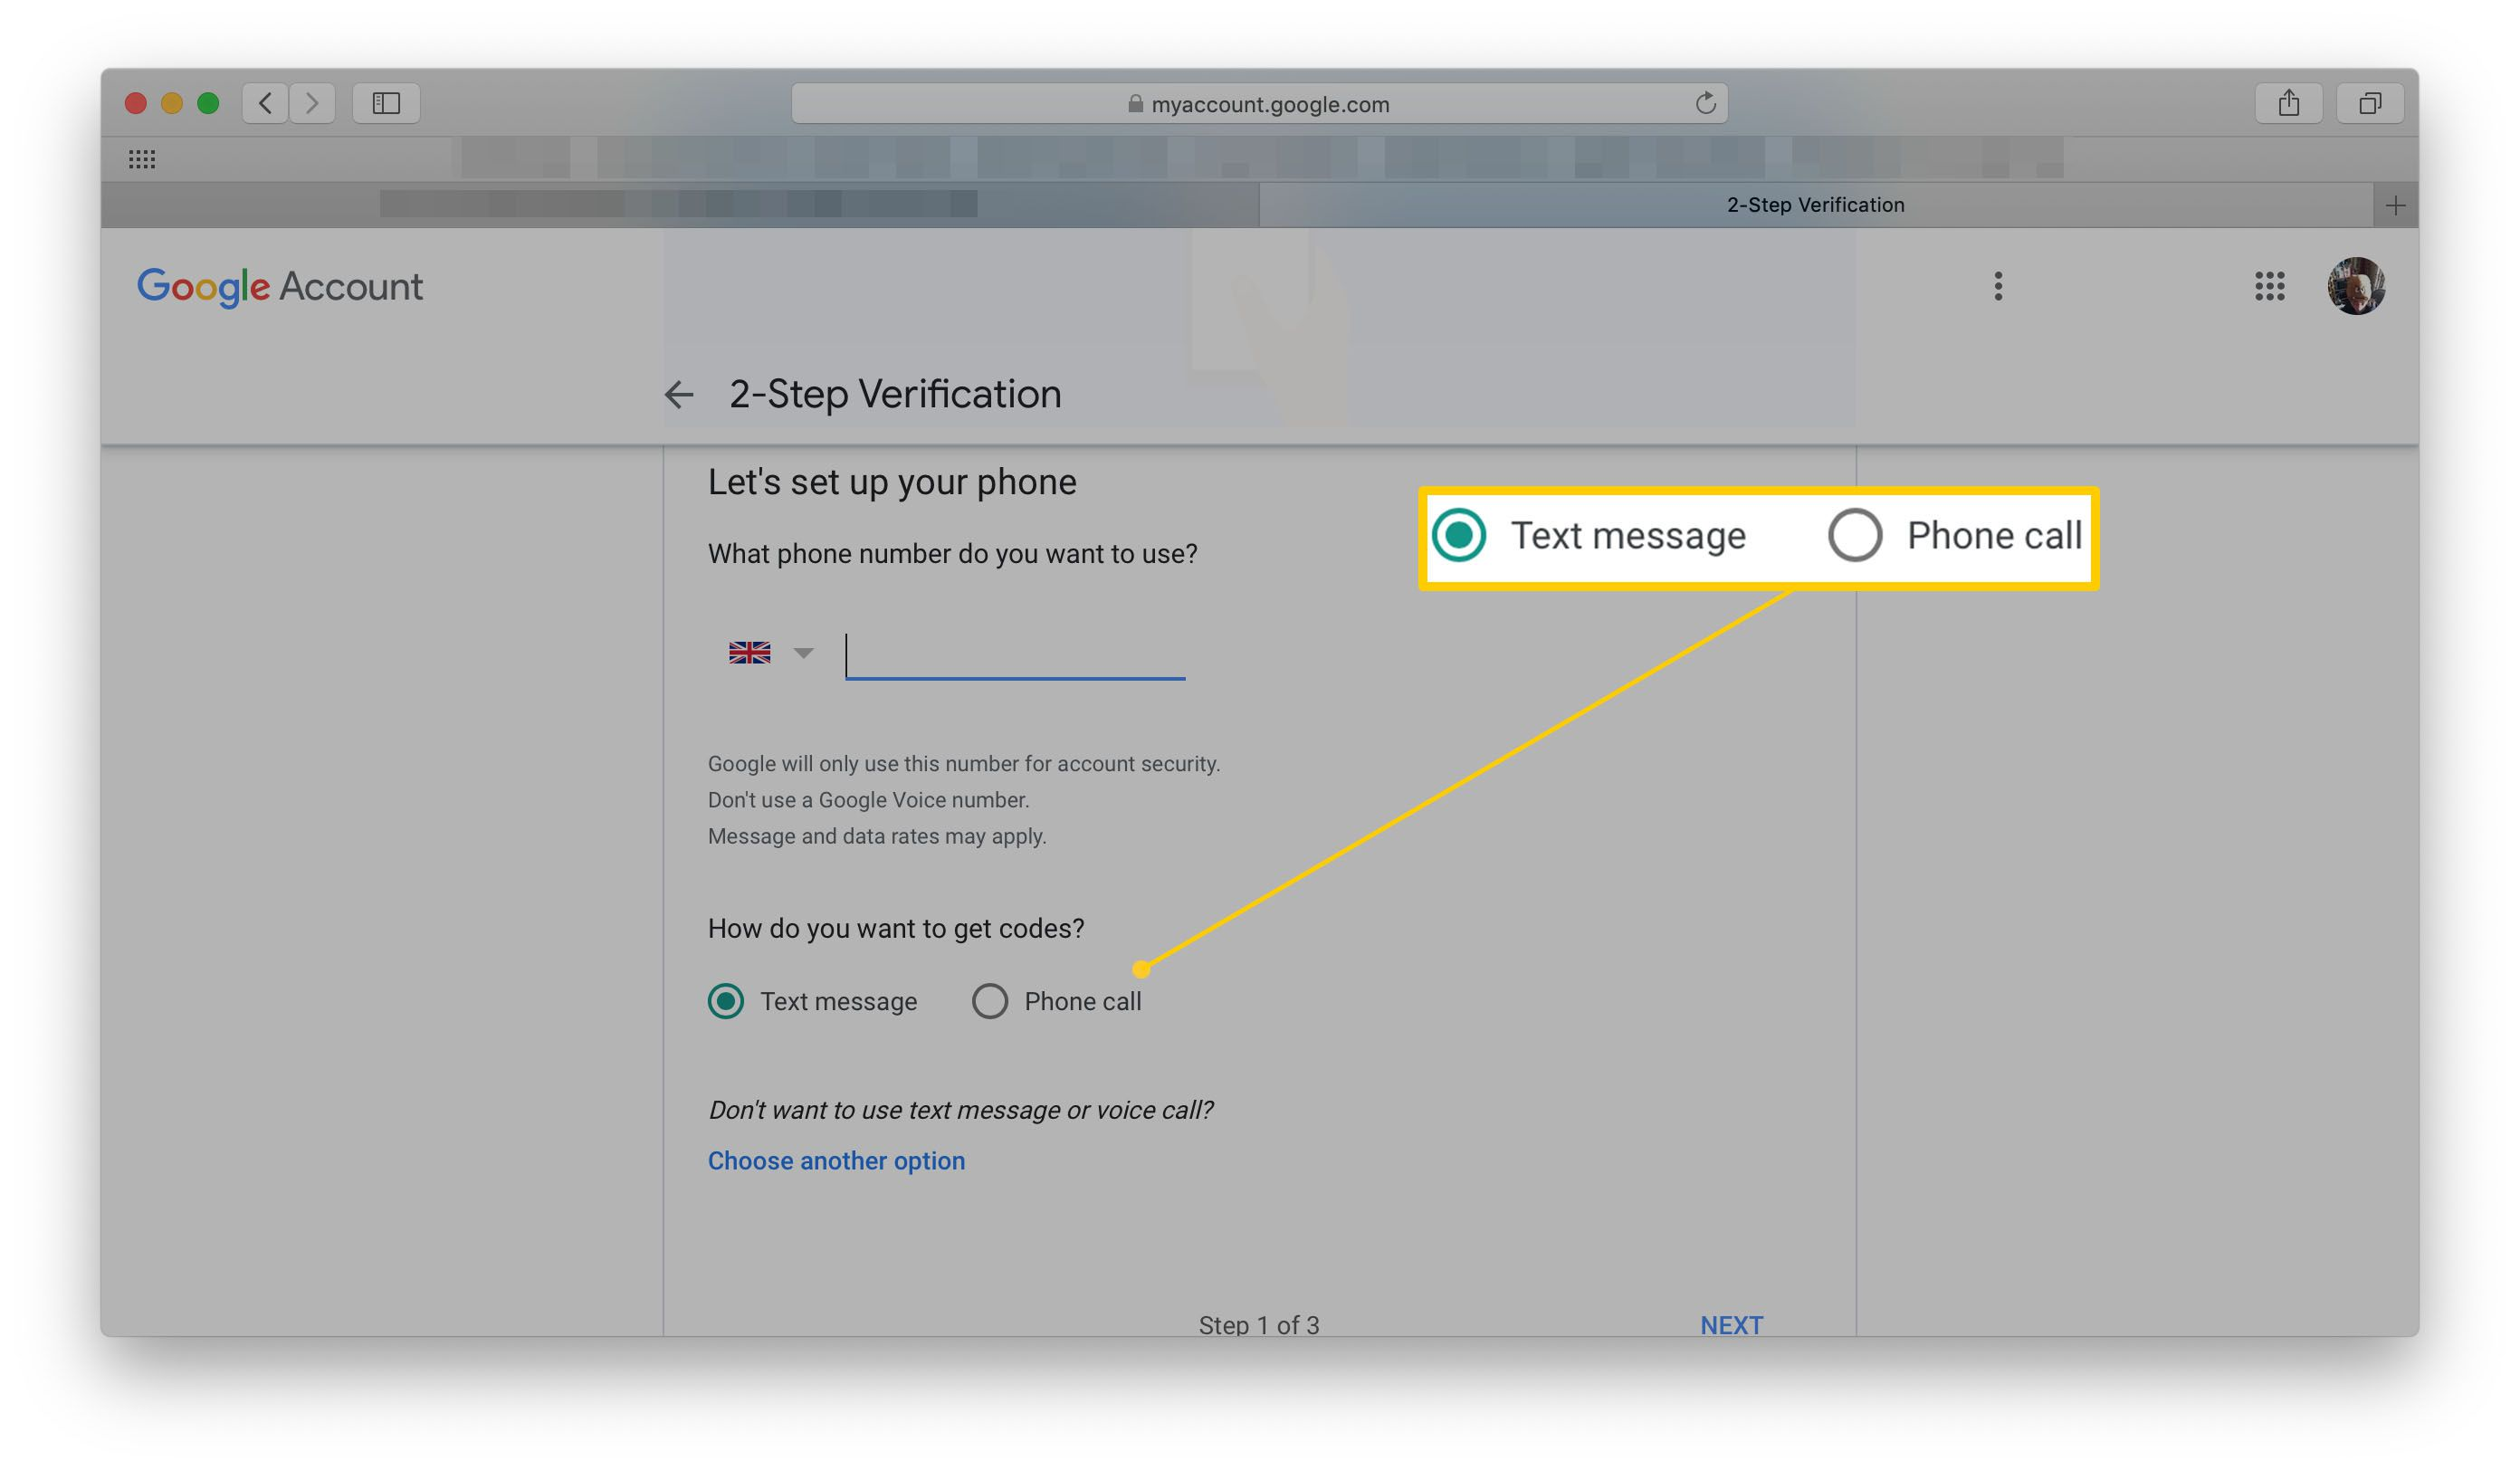 Google 2-Step Verification Page - Text Message or Phone Call options highlighted